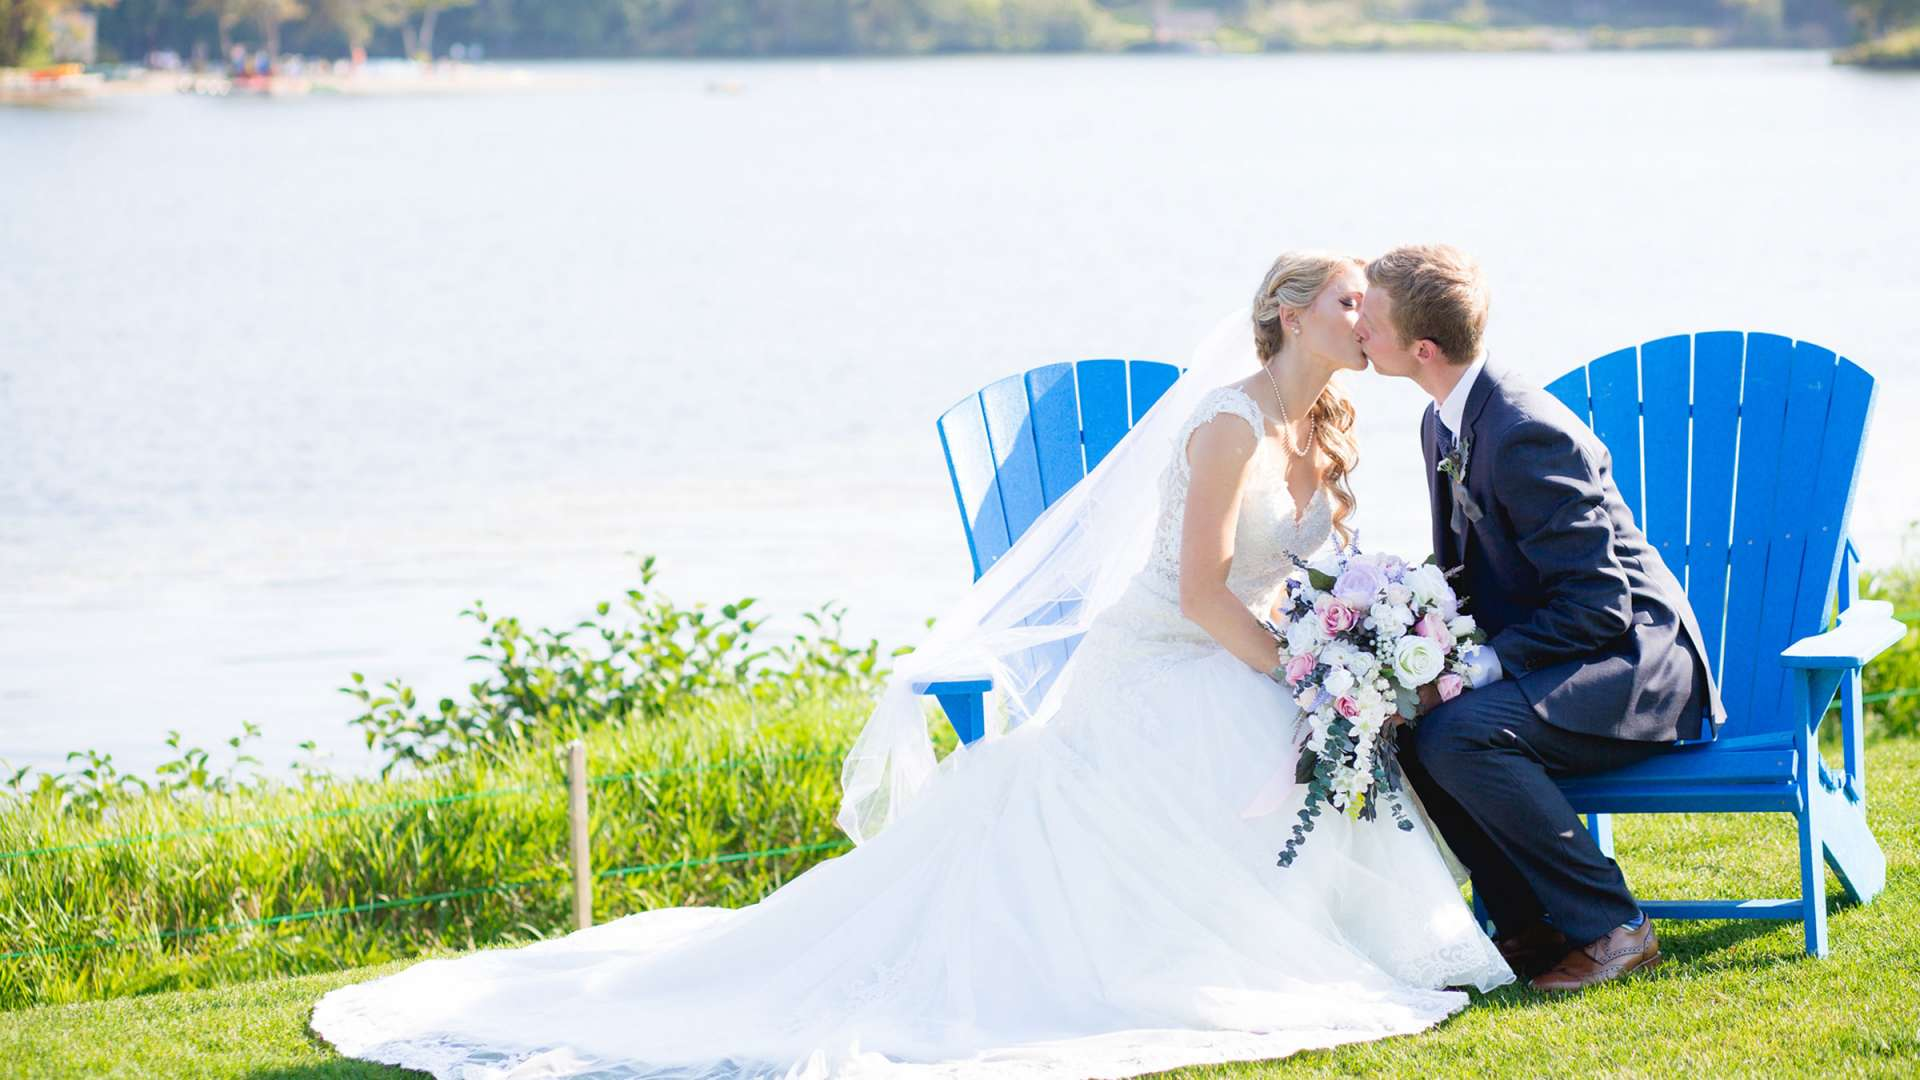 Krista & Dan: A Lakeside Ceremony